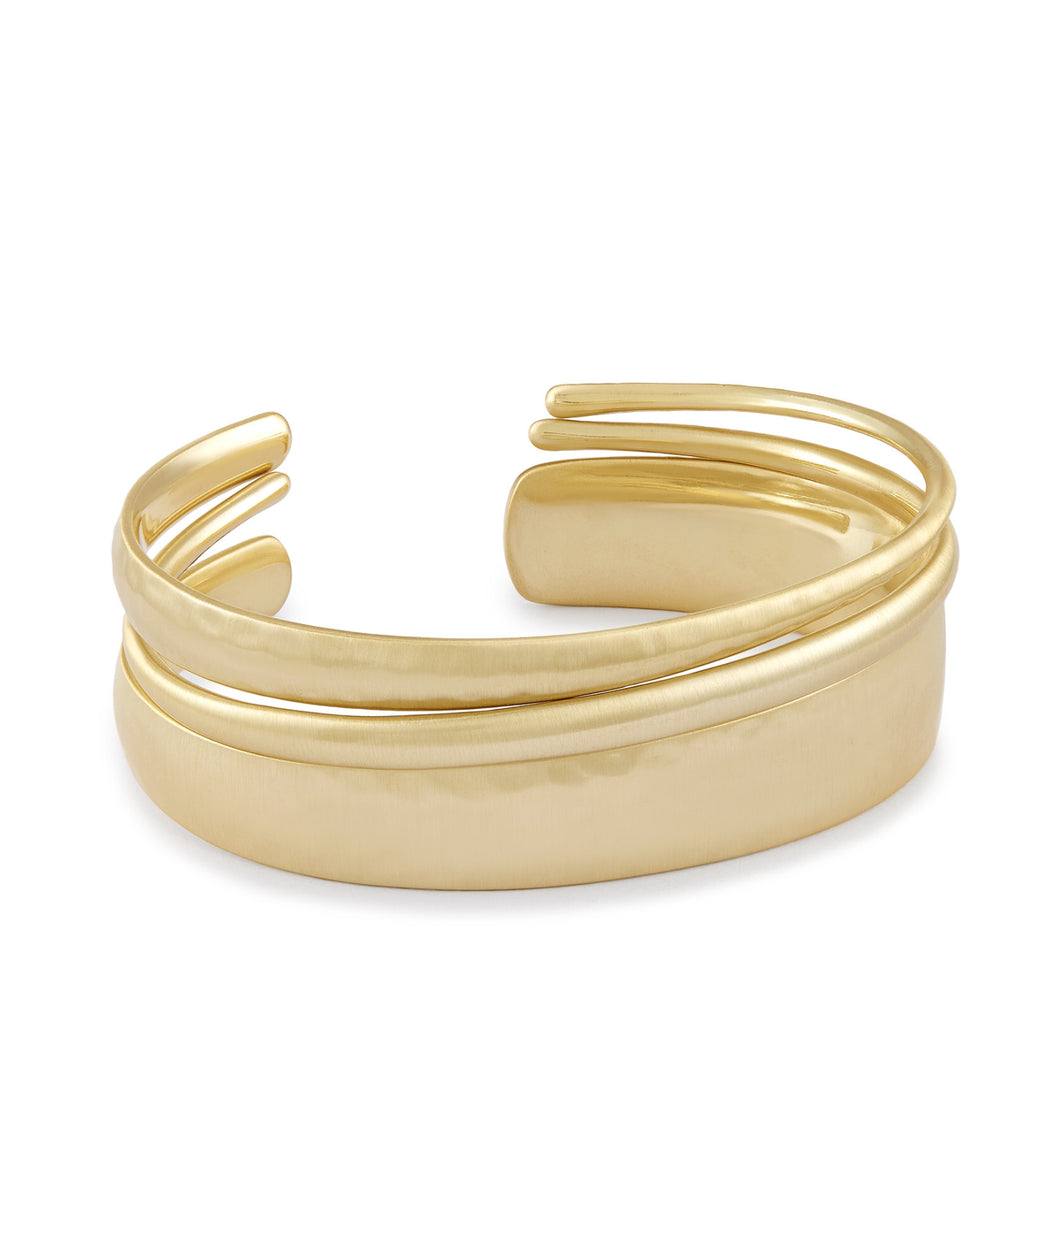 Kendra Scott: Tiana Cuffs - The Vogue Boutique